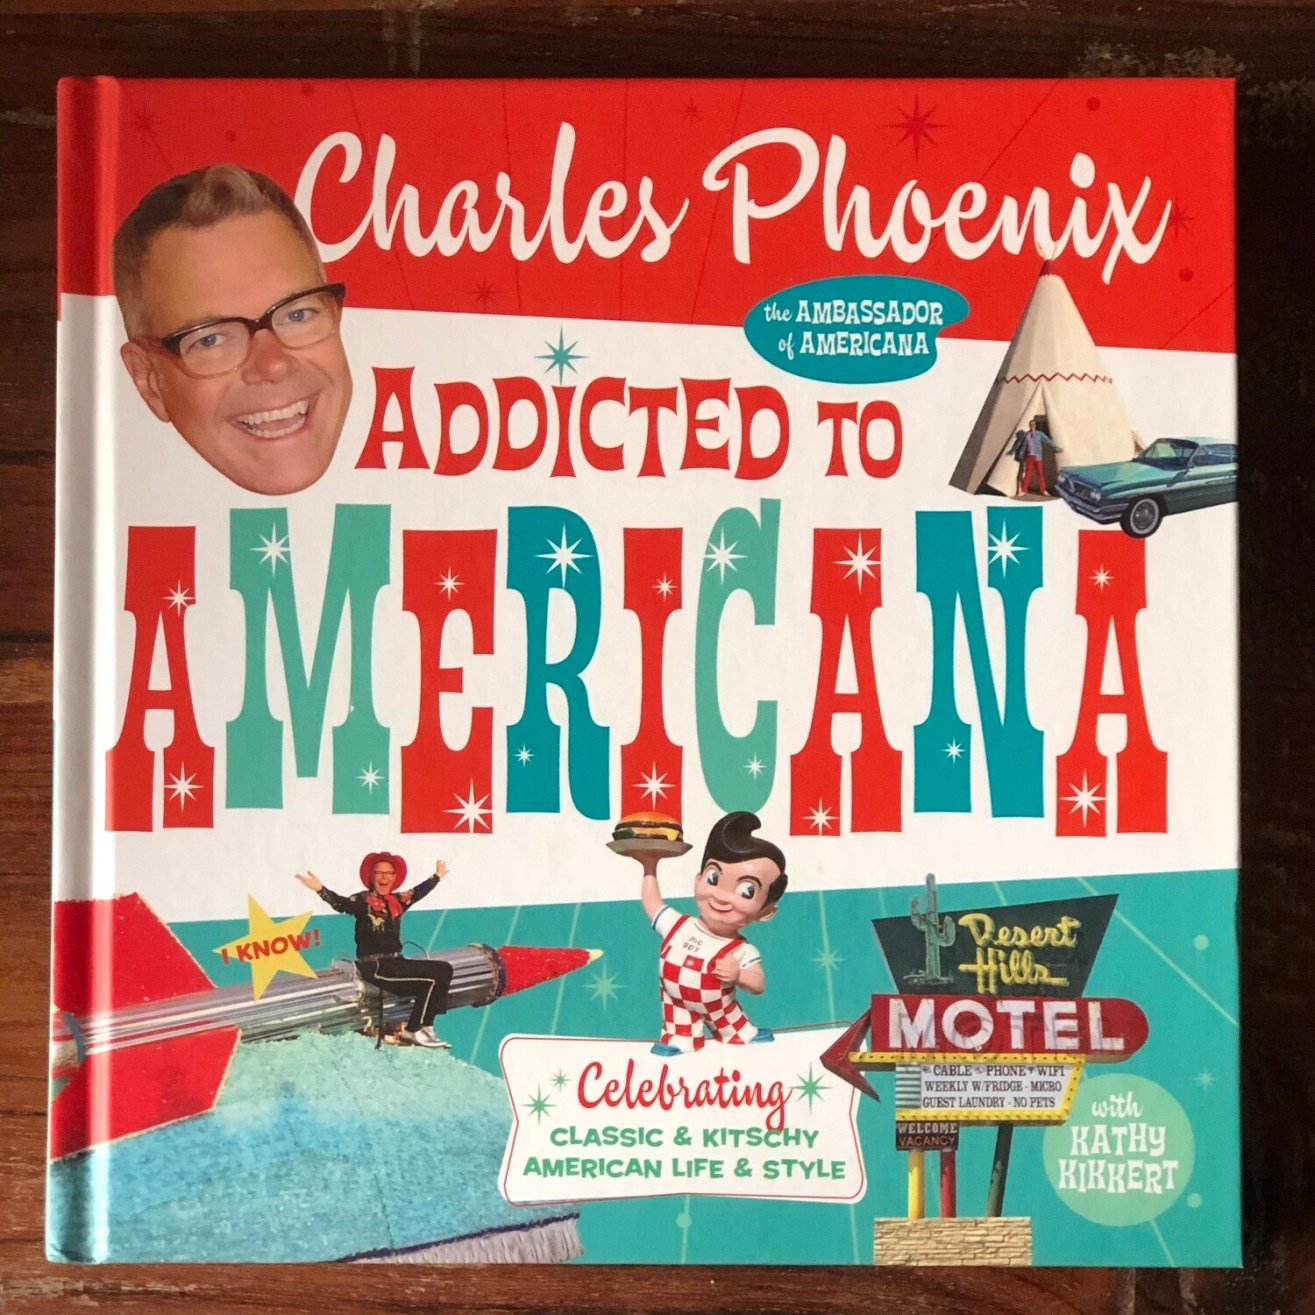 Addicted to Americana book signed by Charles Phoenix